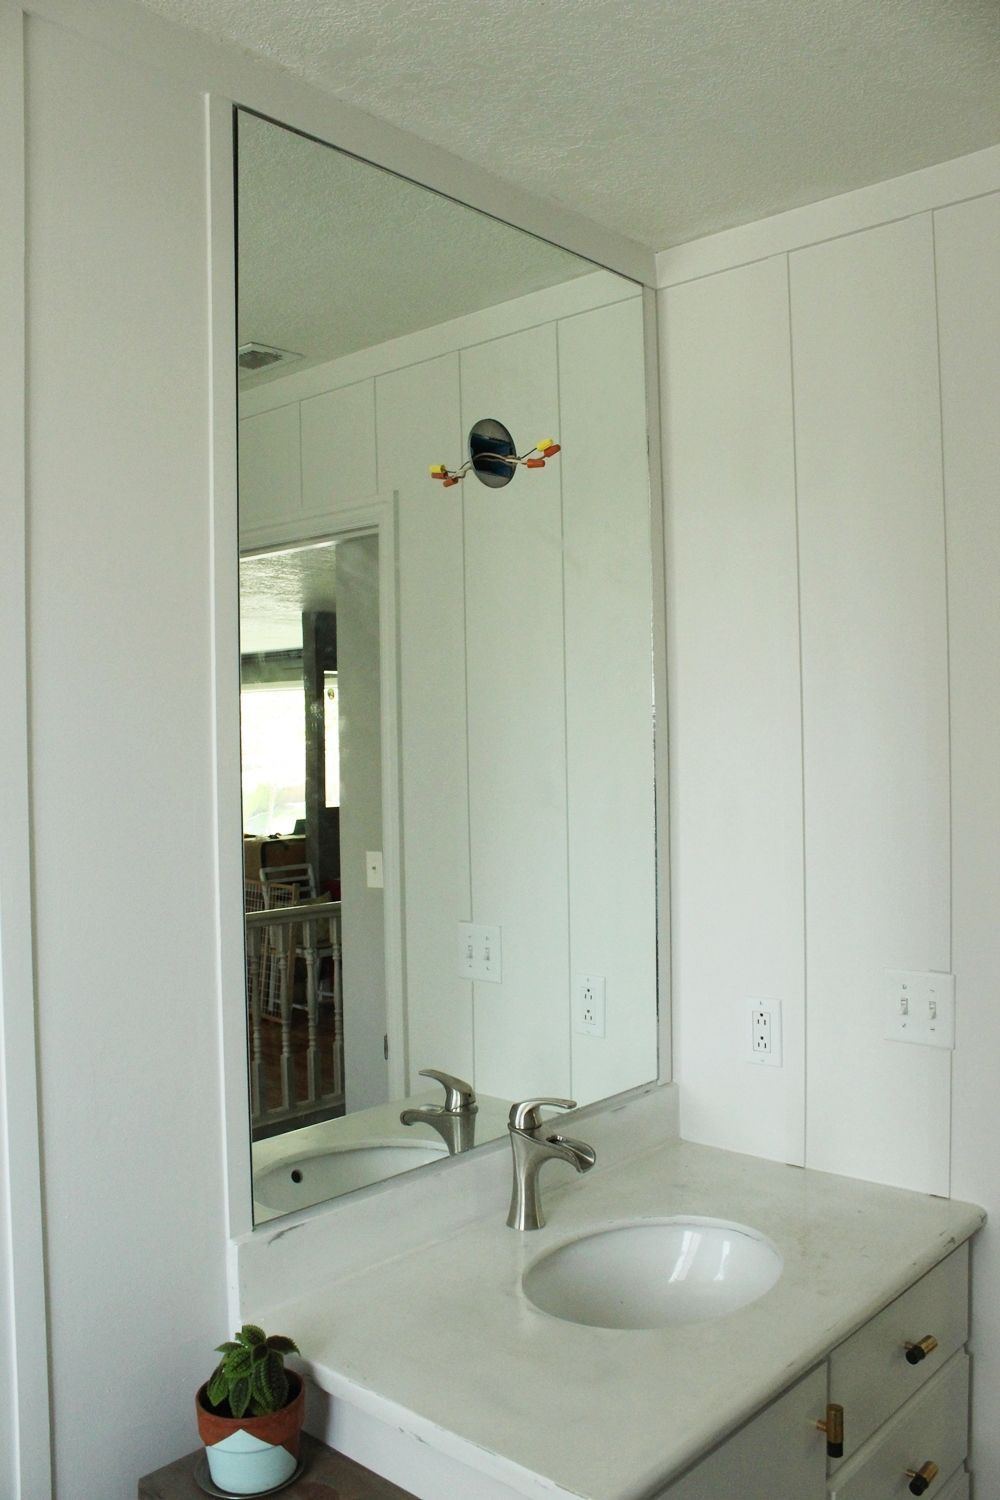 Small Bathroom Mirror How To Professionally Install A Bathroom Mirror